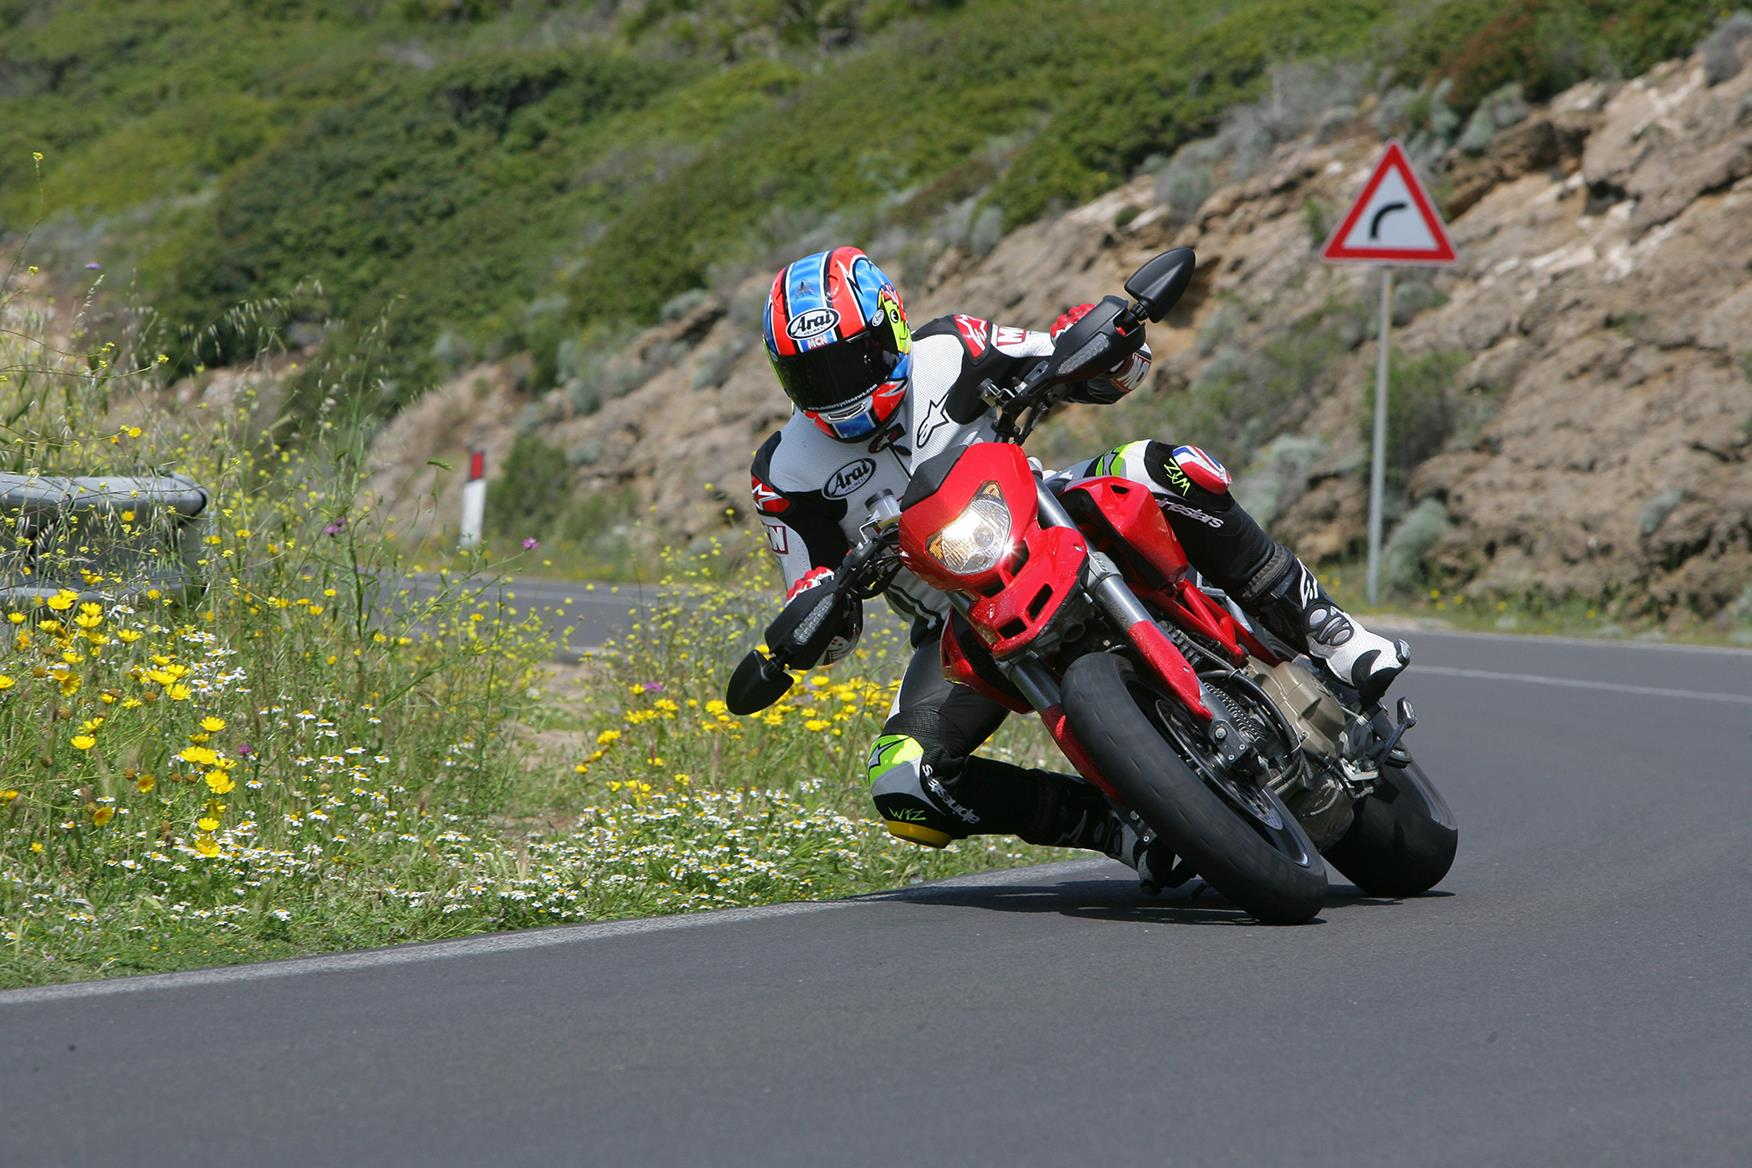 In action on the Ducati Hypermotard 1100